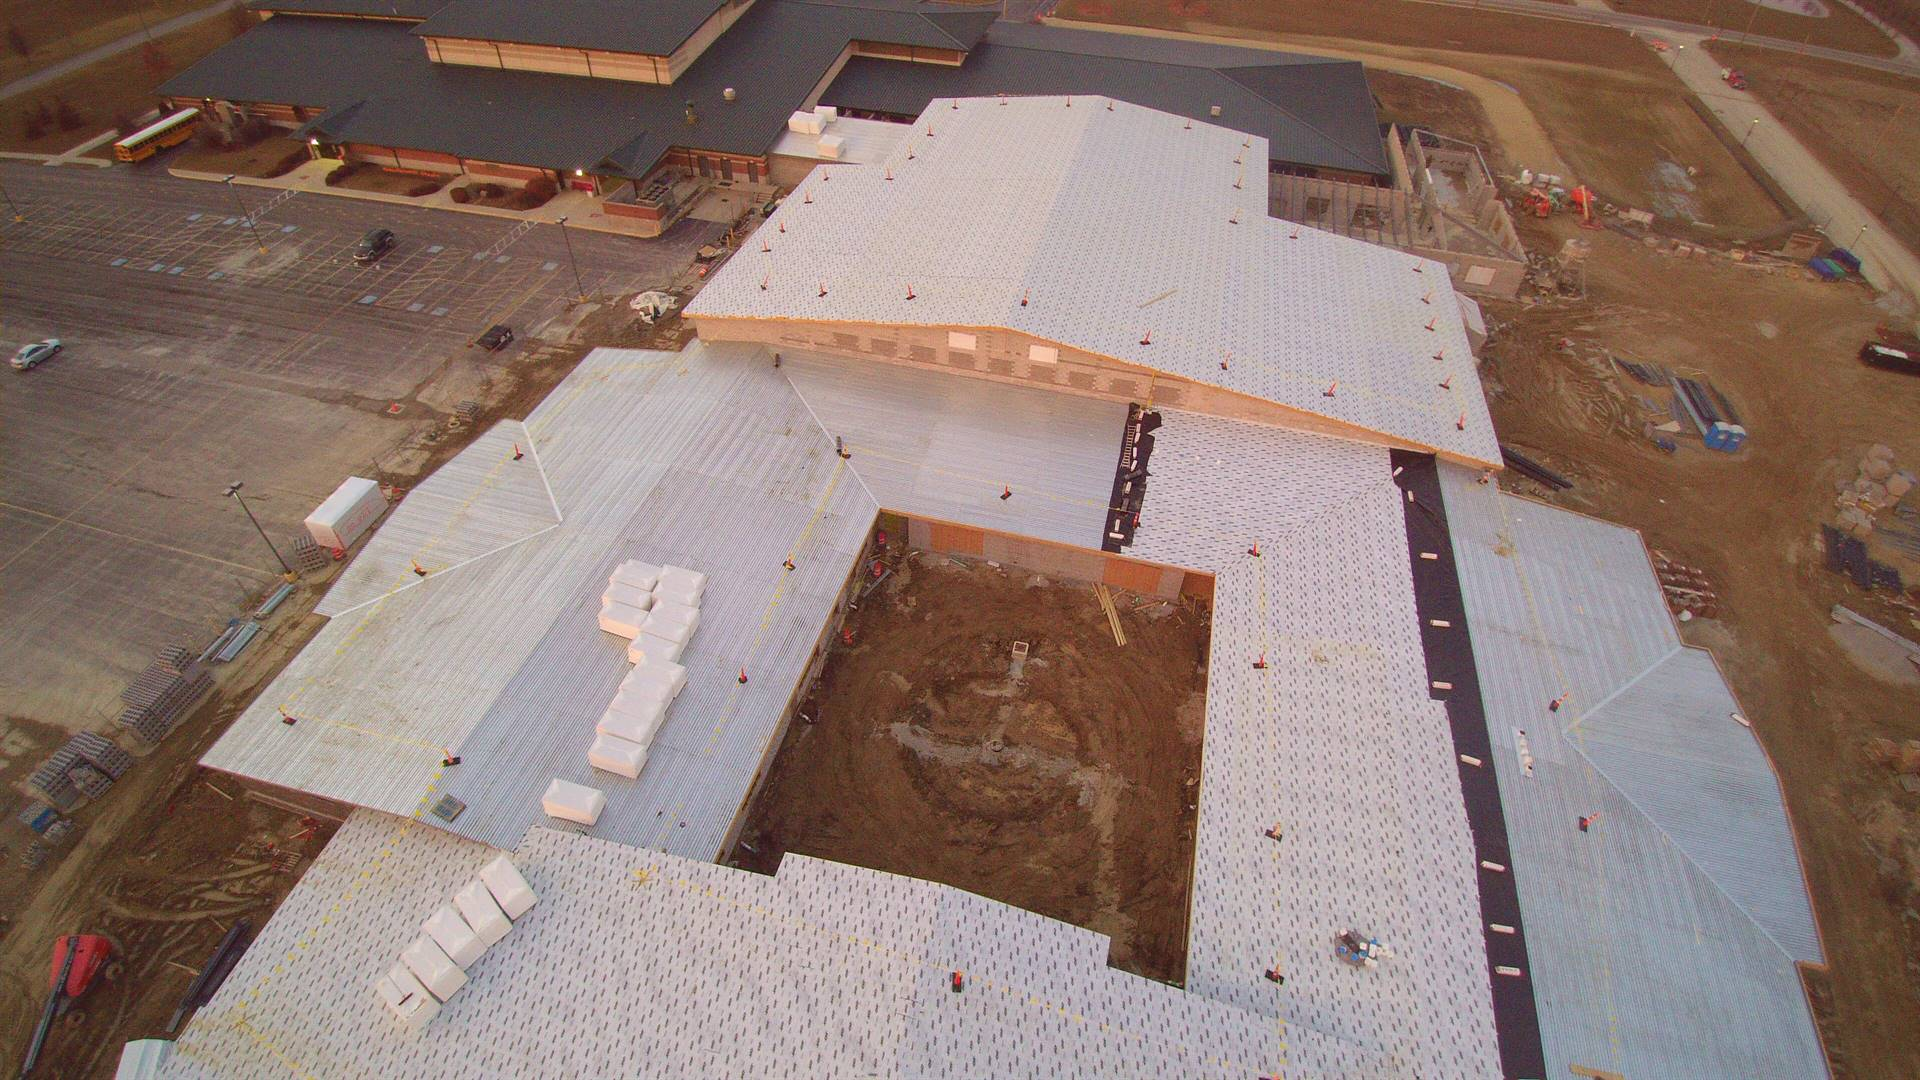 Aerial photo of the new building under contruction - picture facing north